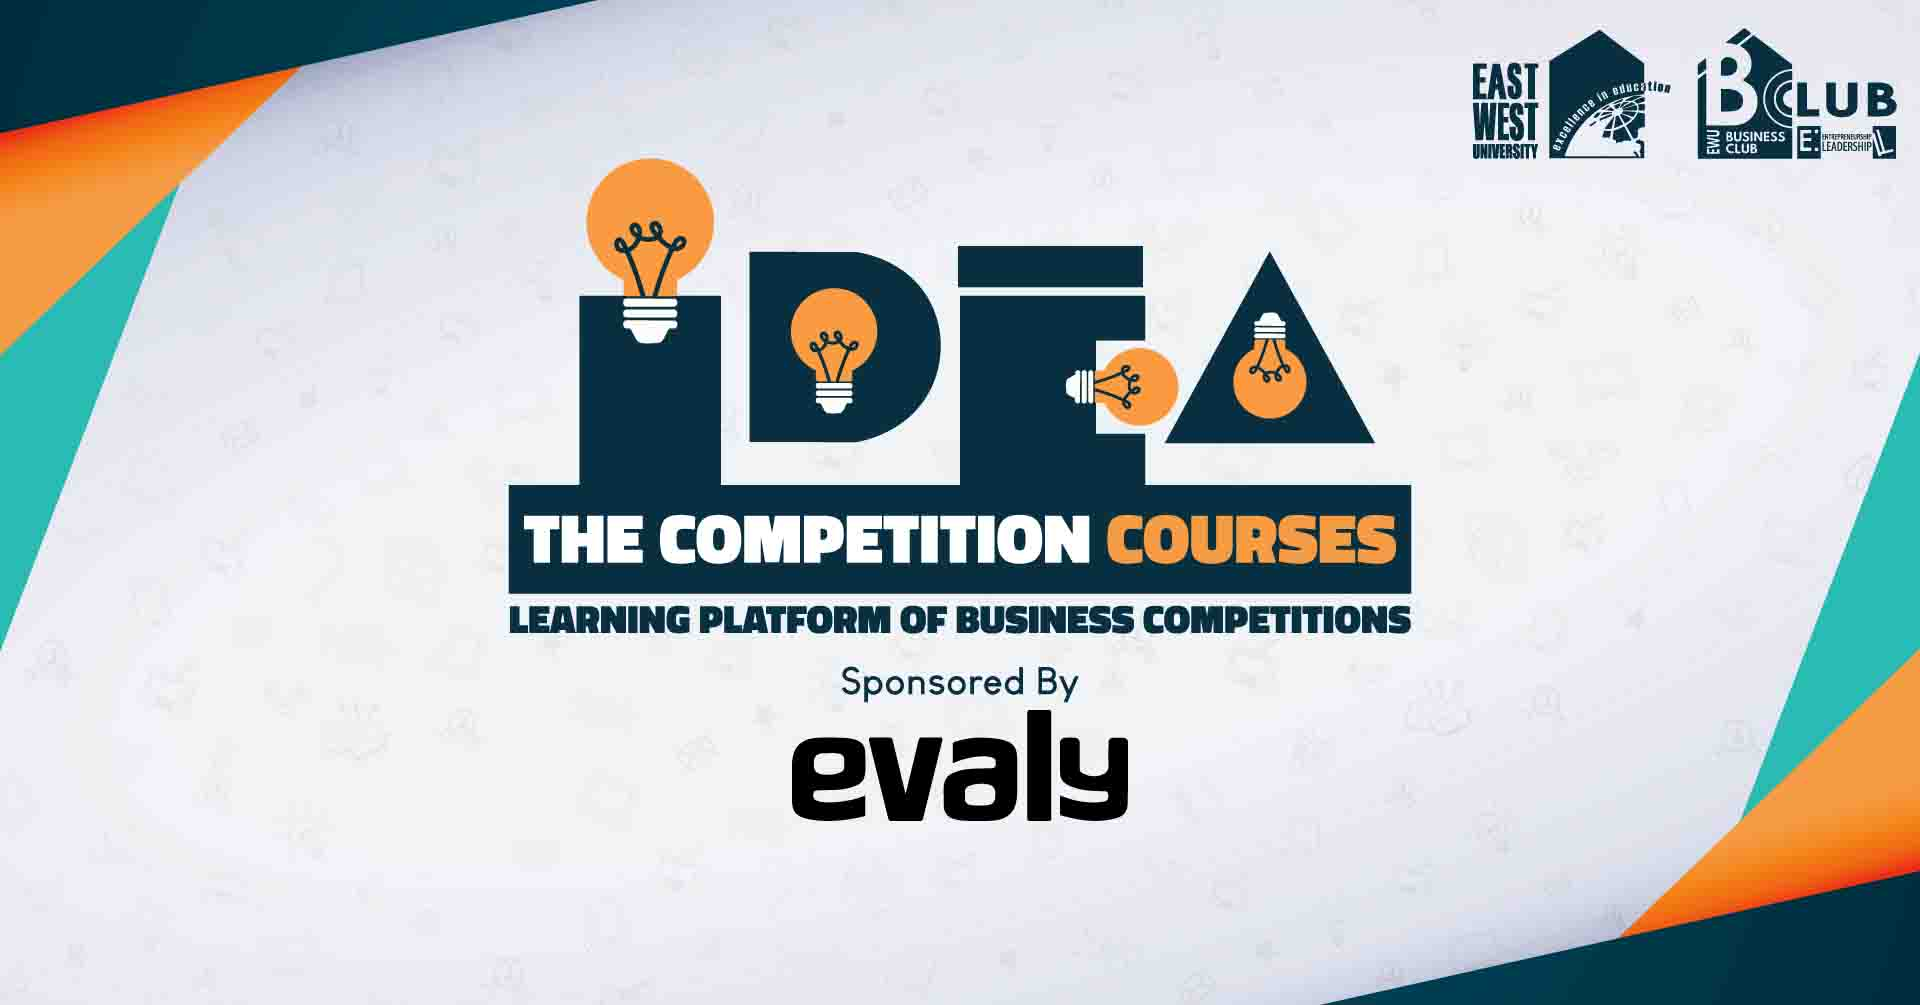 The Competition Courses: A Lucrative Learning Plat...